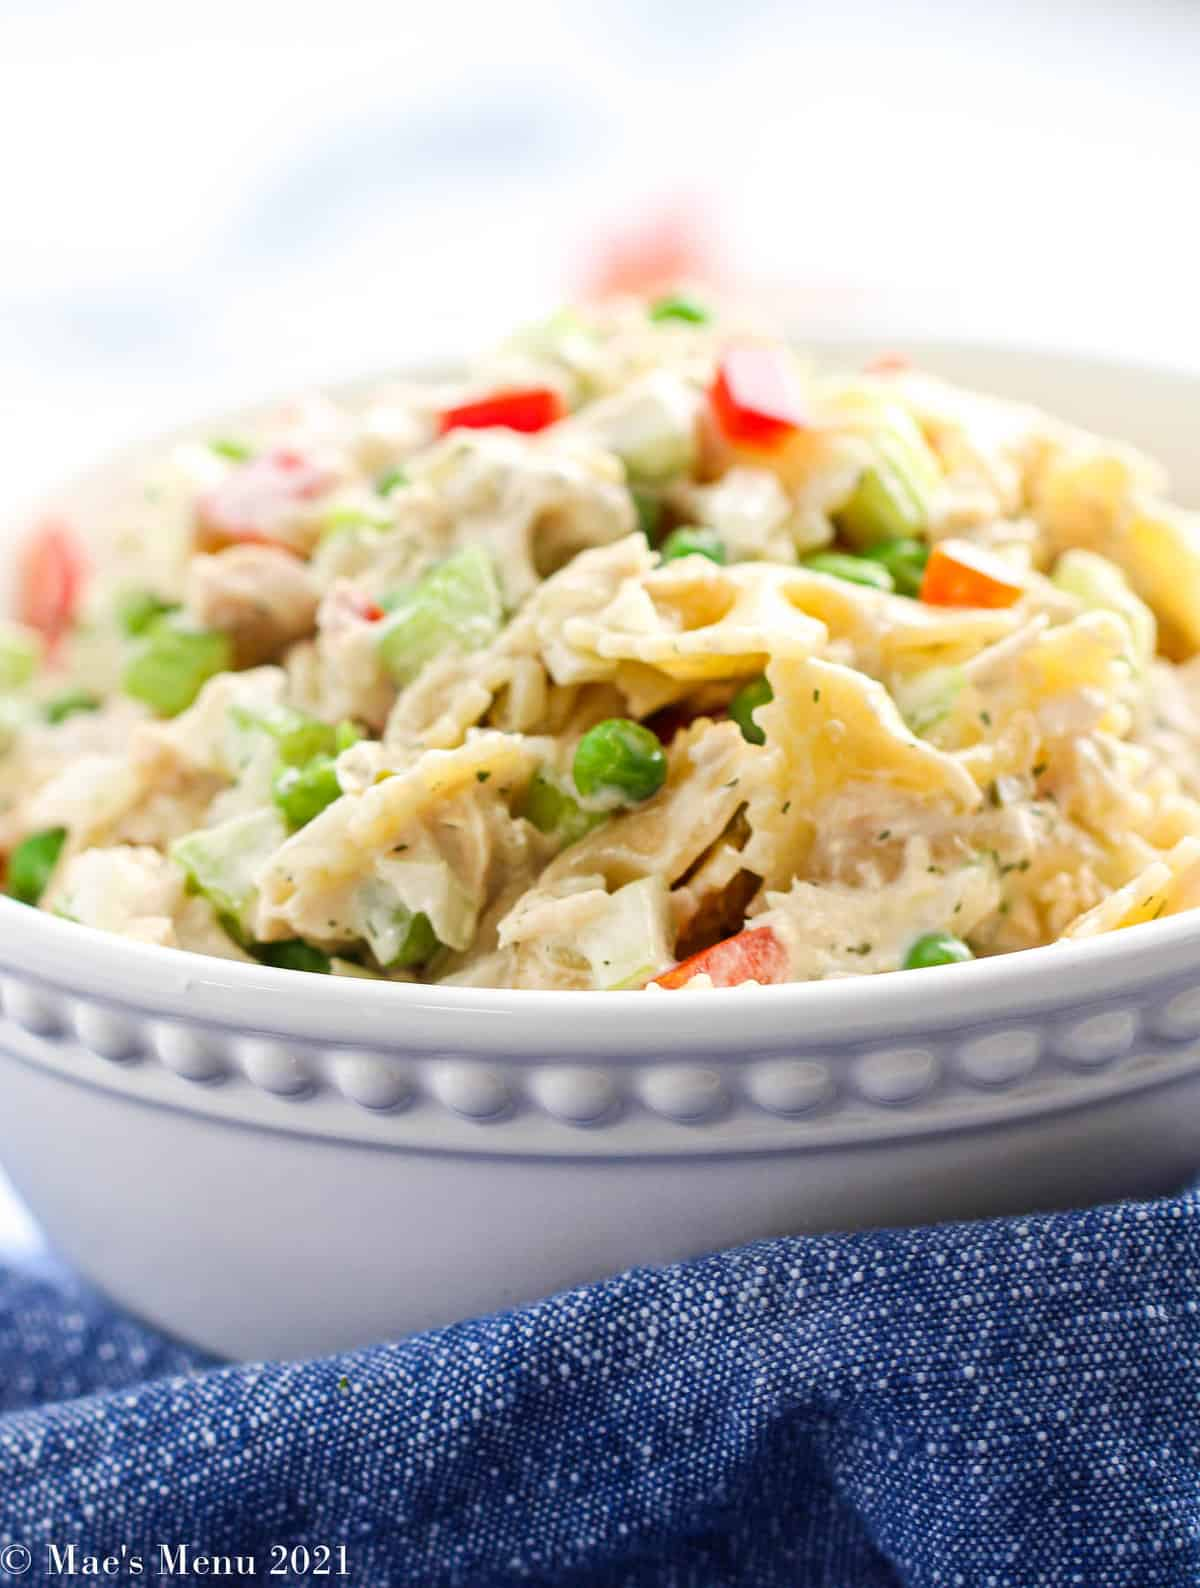 A side shot of a large serving bowl of tuna macaroni salad